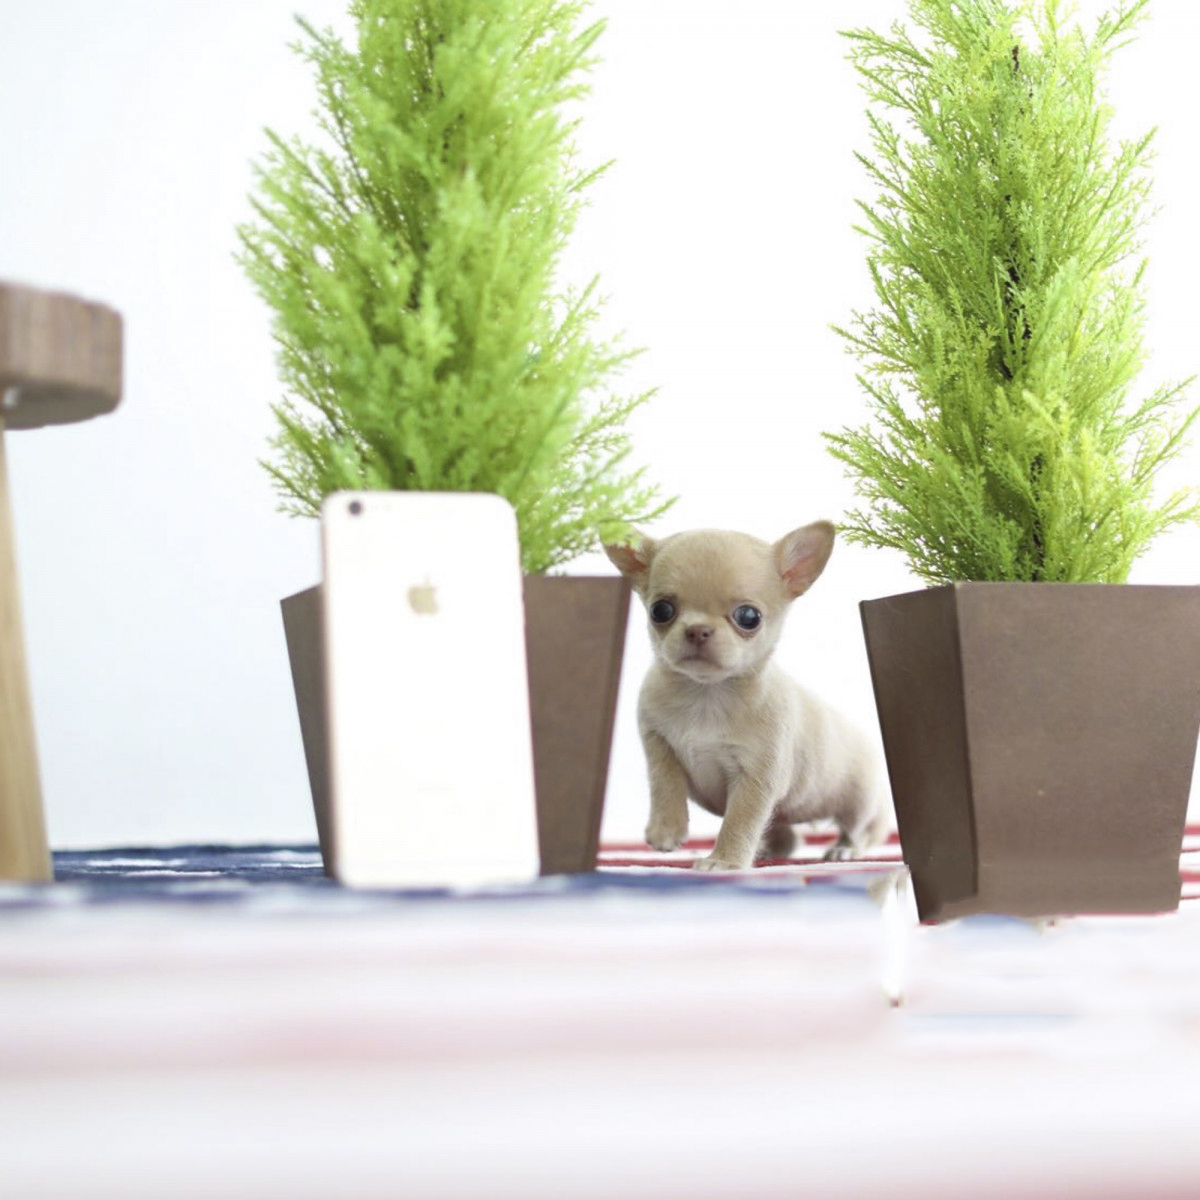 Coconut Cream Teacup Micro Chihuahua Puppy for Sale